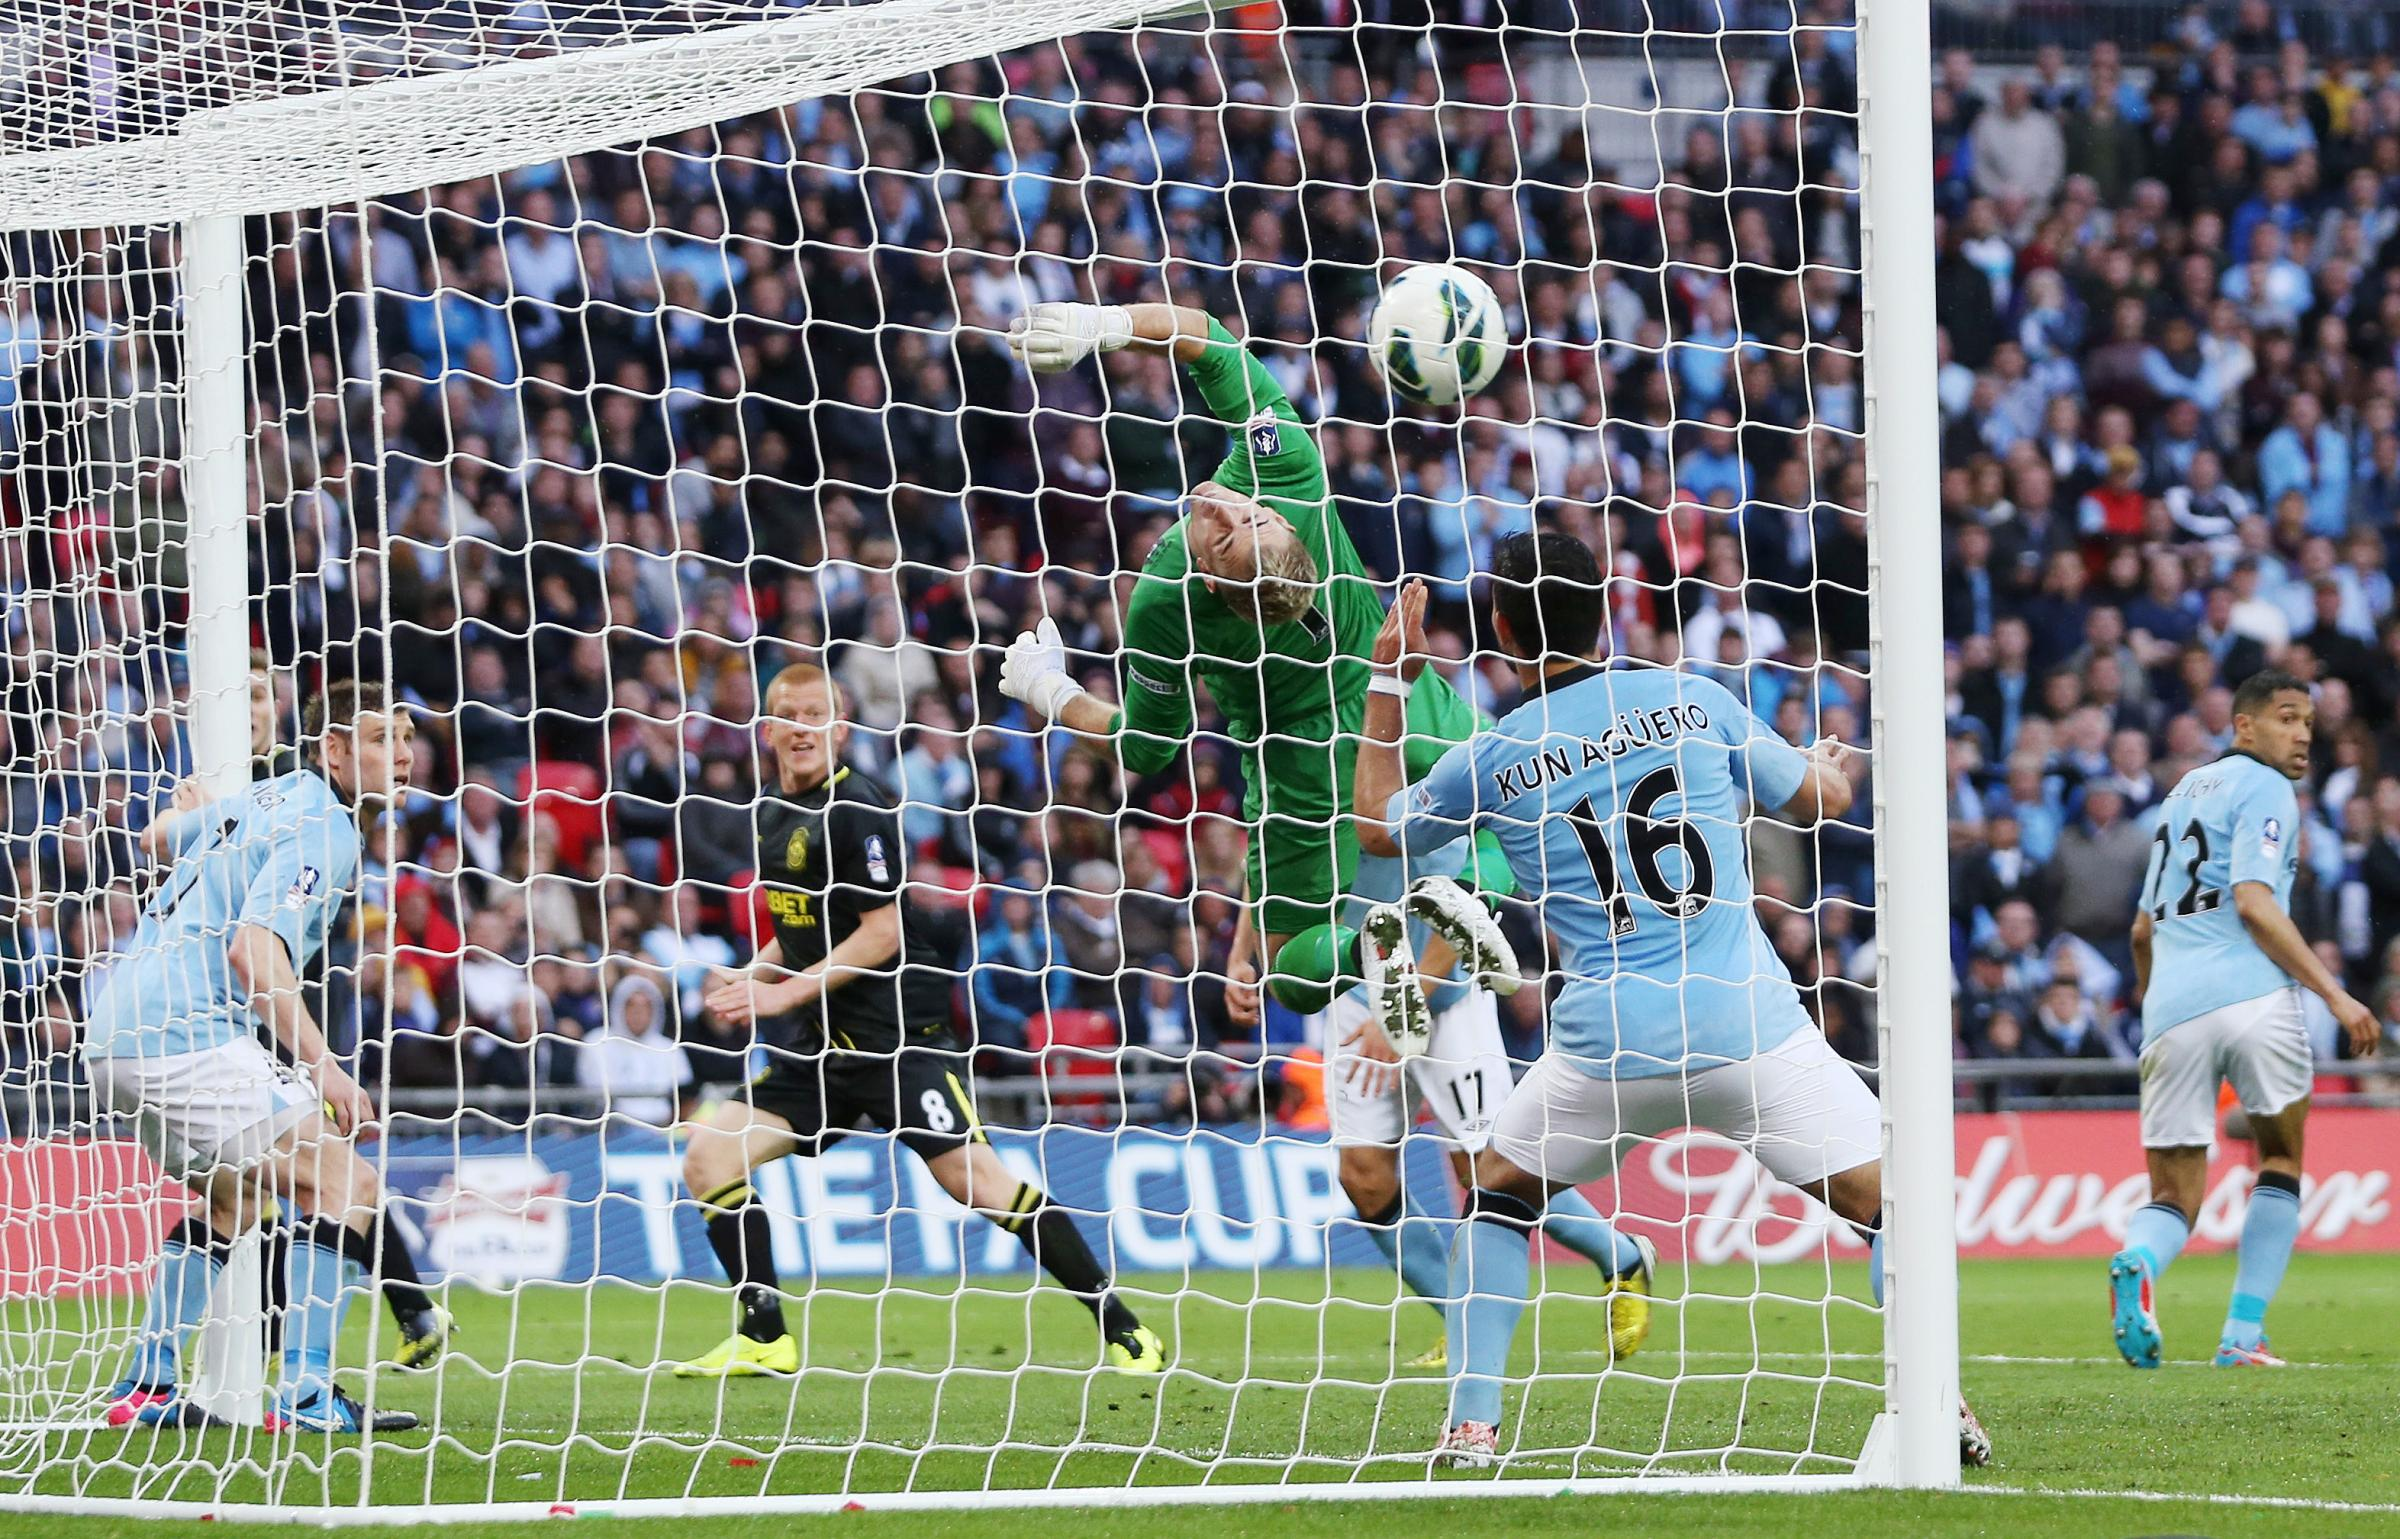 Ben Watson scores against Manchester City in the 2013 FA Cup final. Picture: Action Images